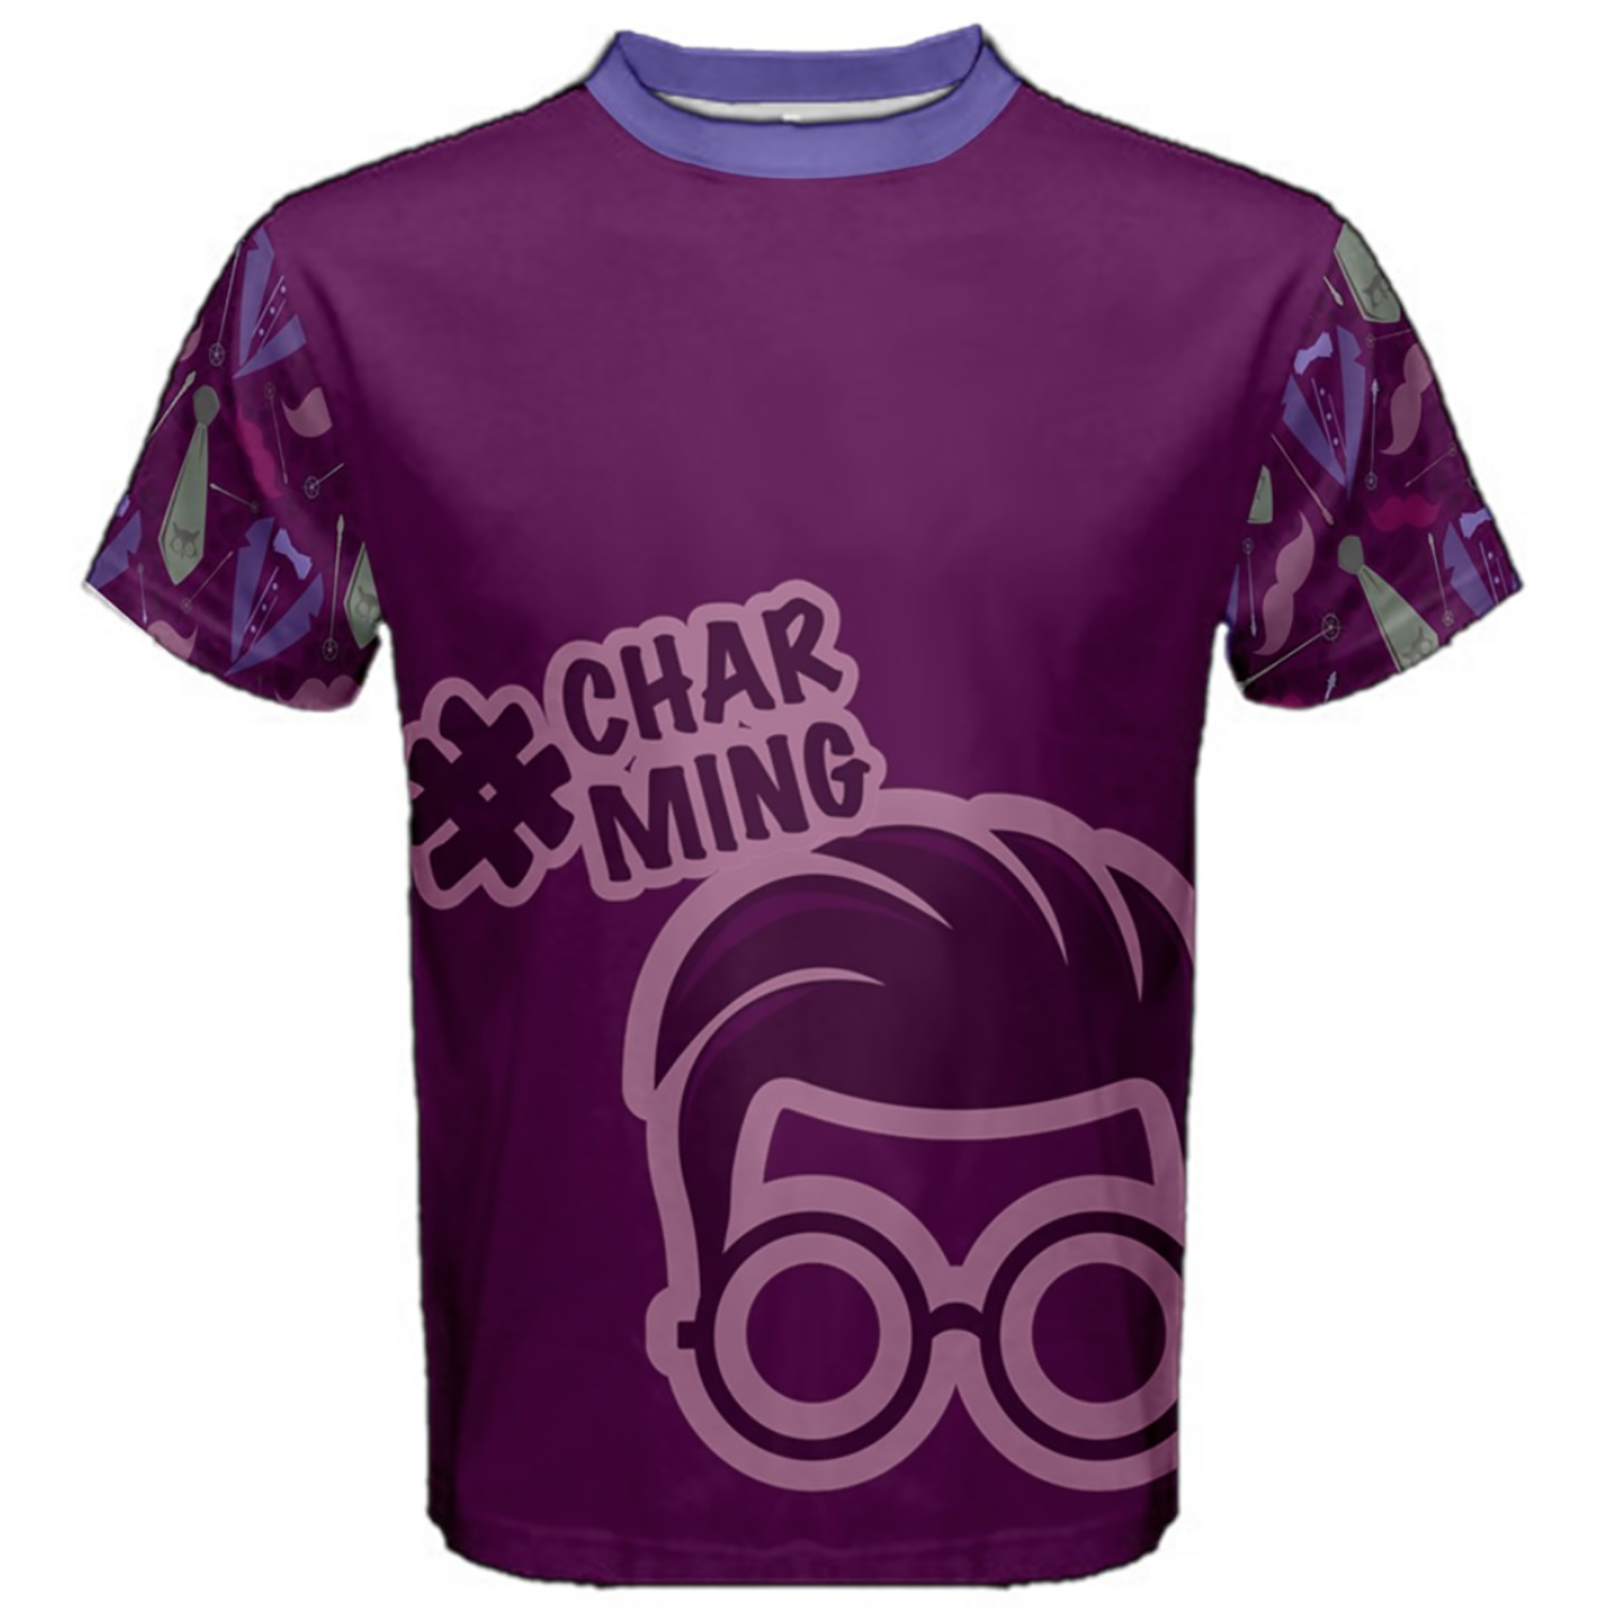 Charming Men's Cotton Tee (Solid Color Body)